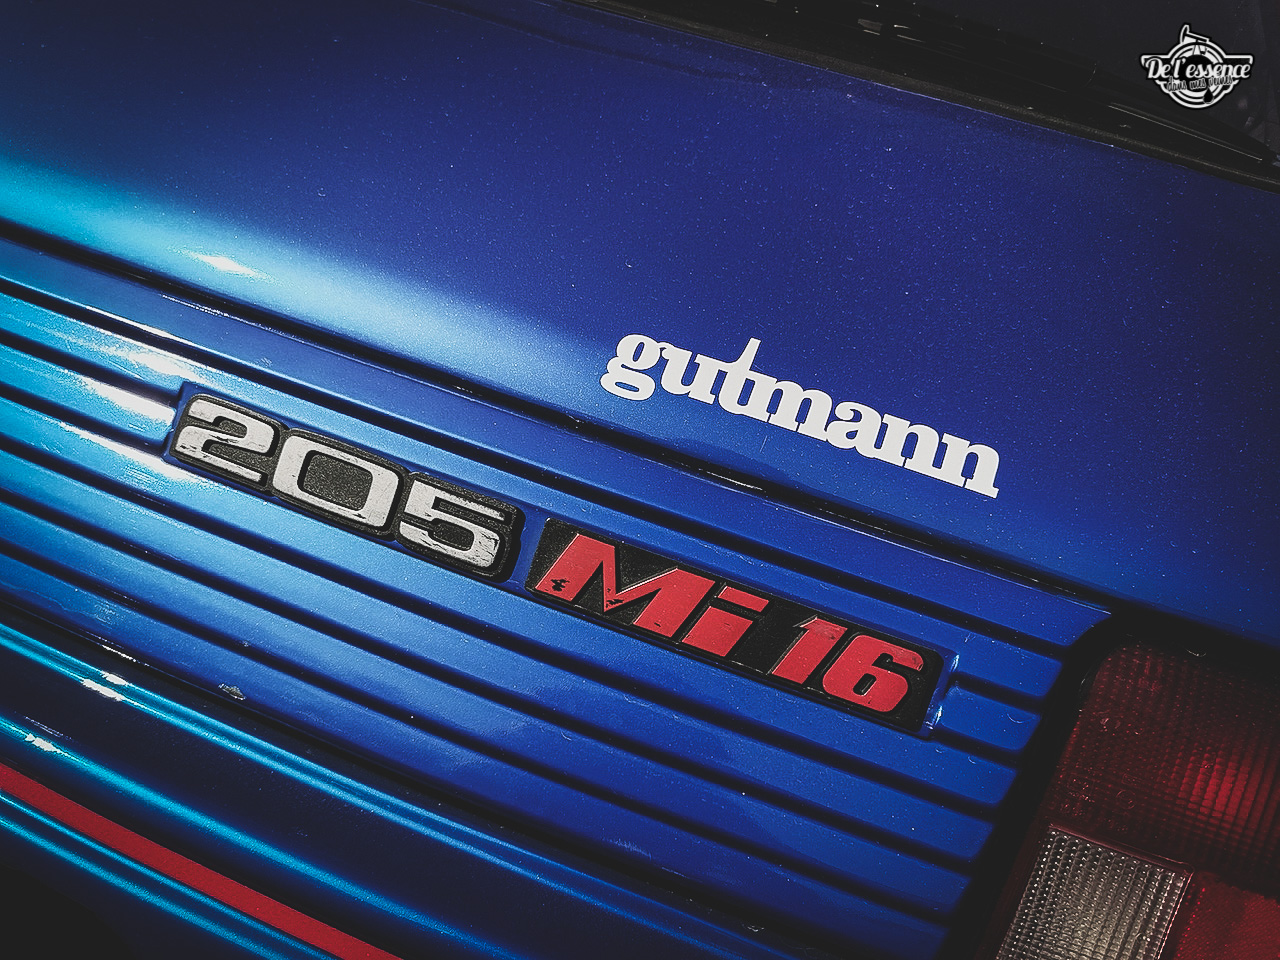 Peugeot 205 GTi Mi16 Gutmann - Quand le tuning devient collector ! 9